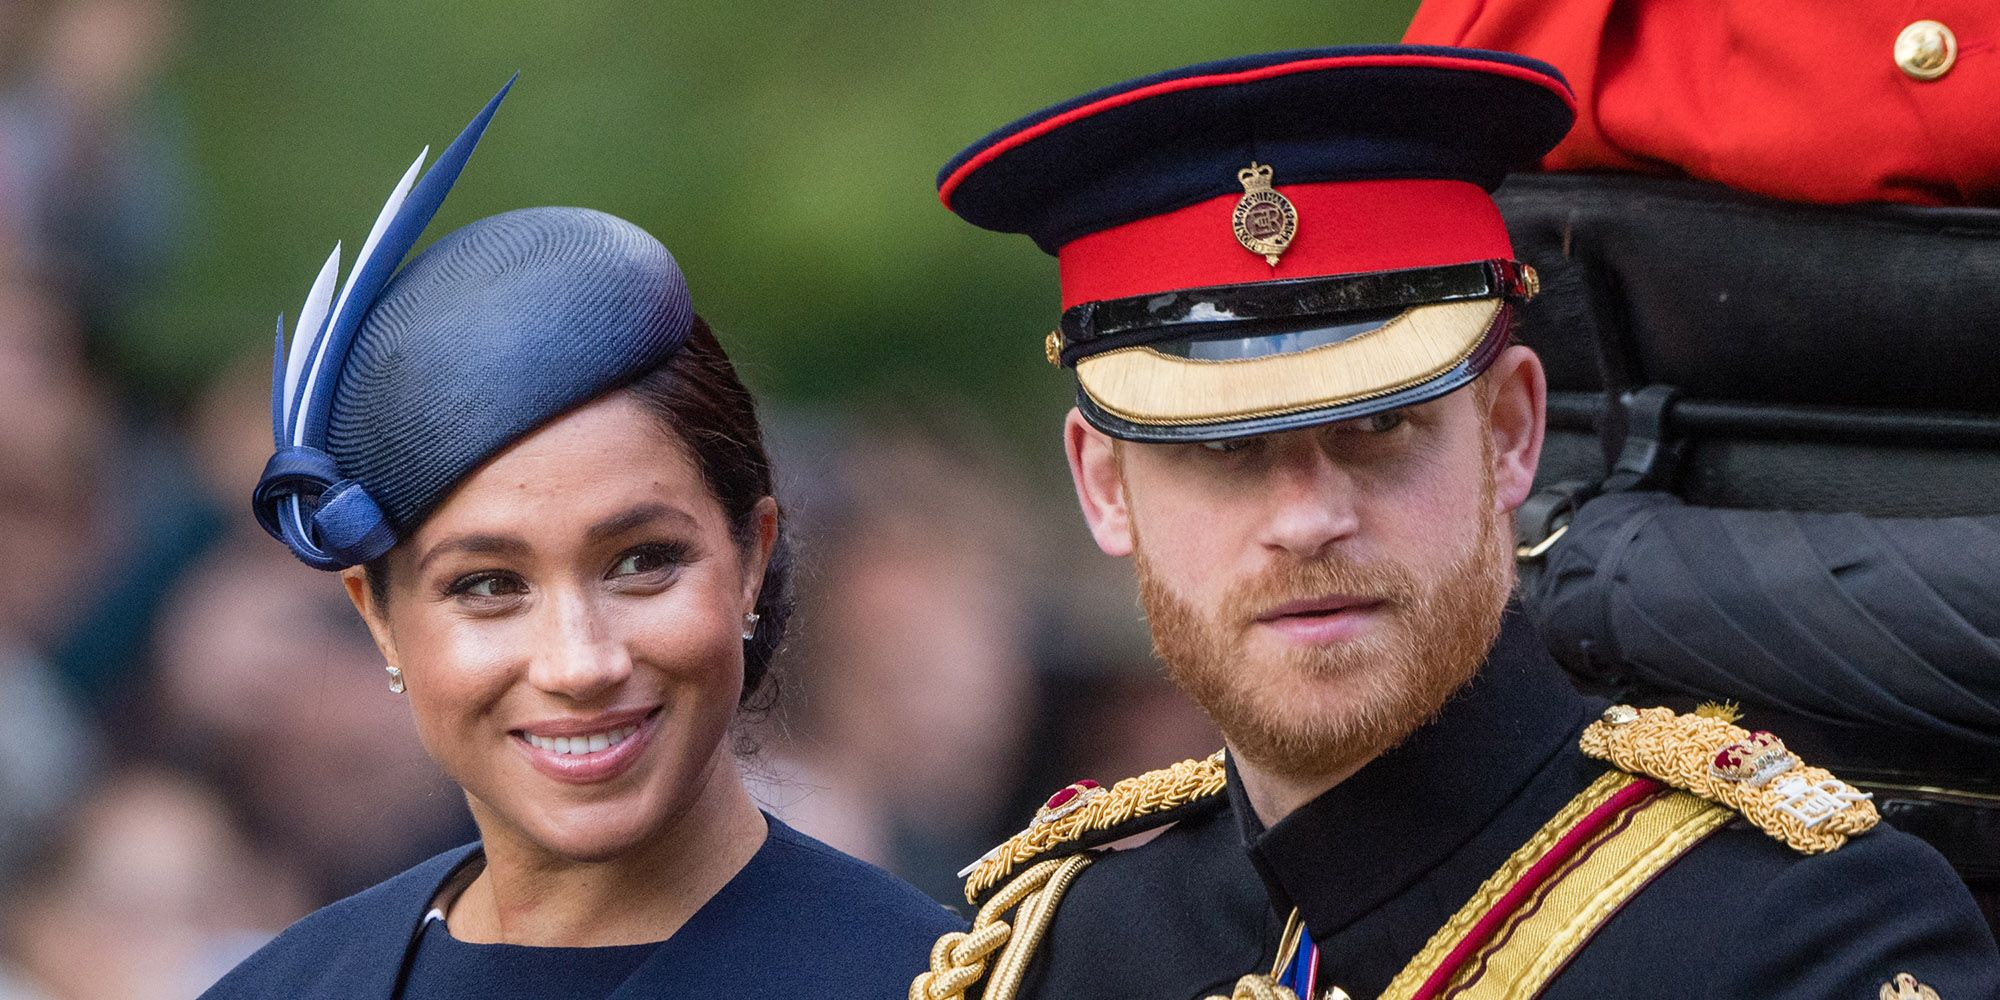 The one request Meghan Markle and Prince Harry have apparently made of their nanny